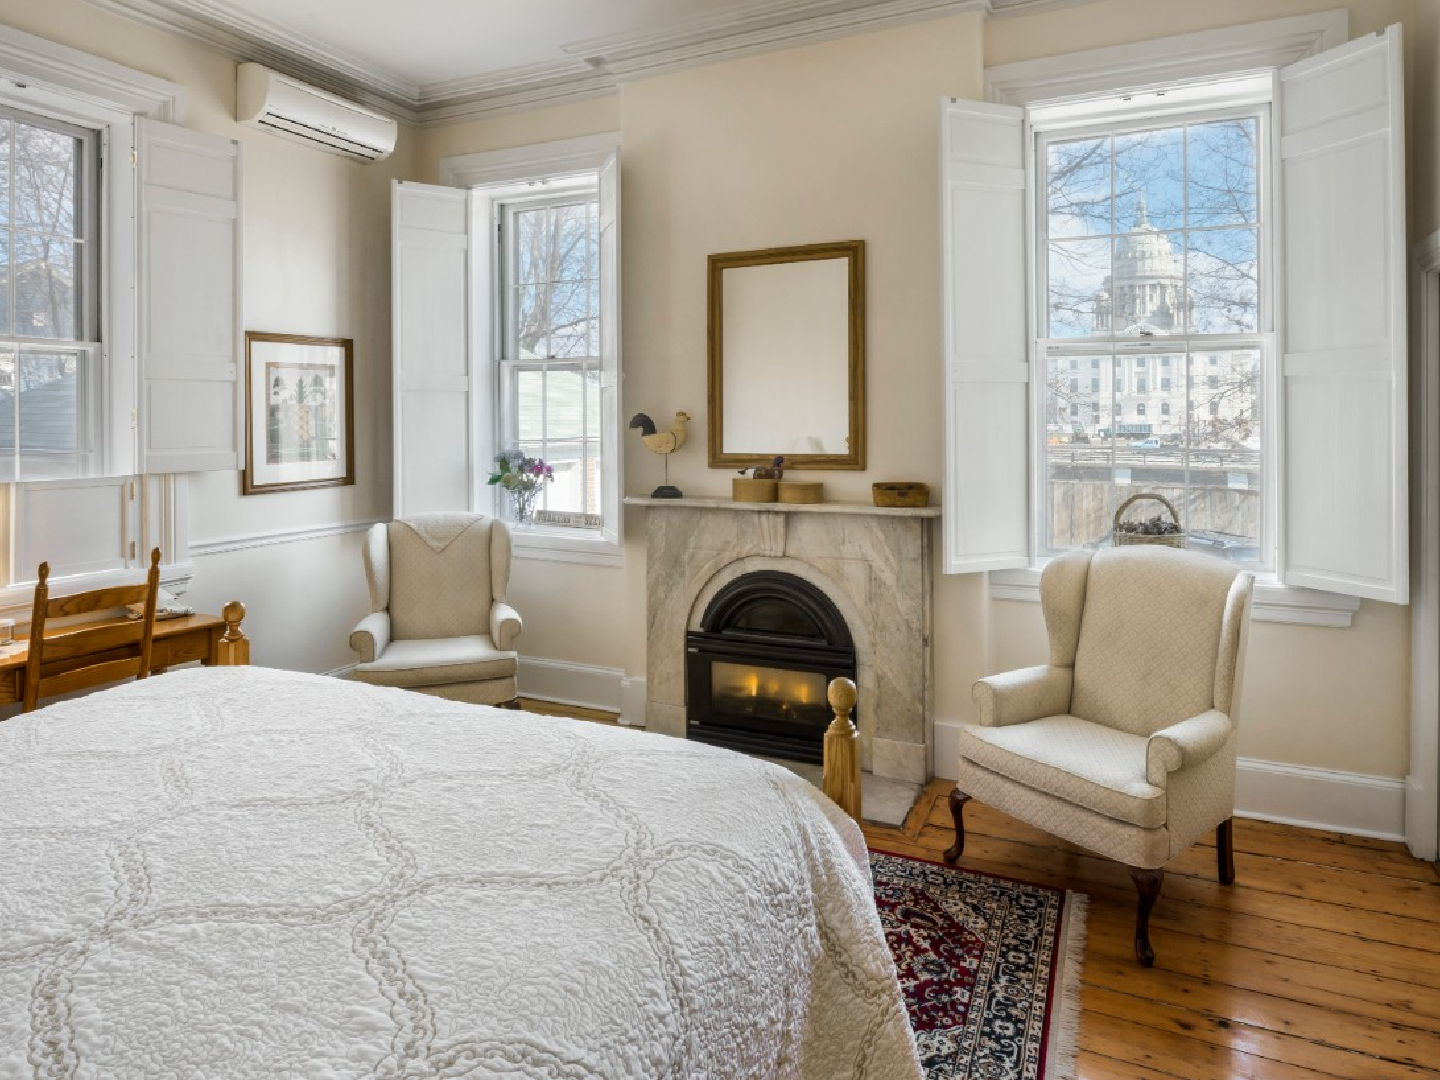 A bedroom with a fireplace and a large window at Christopher Dodge House.